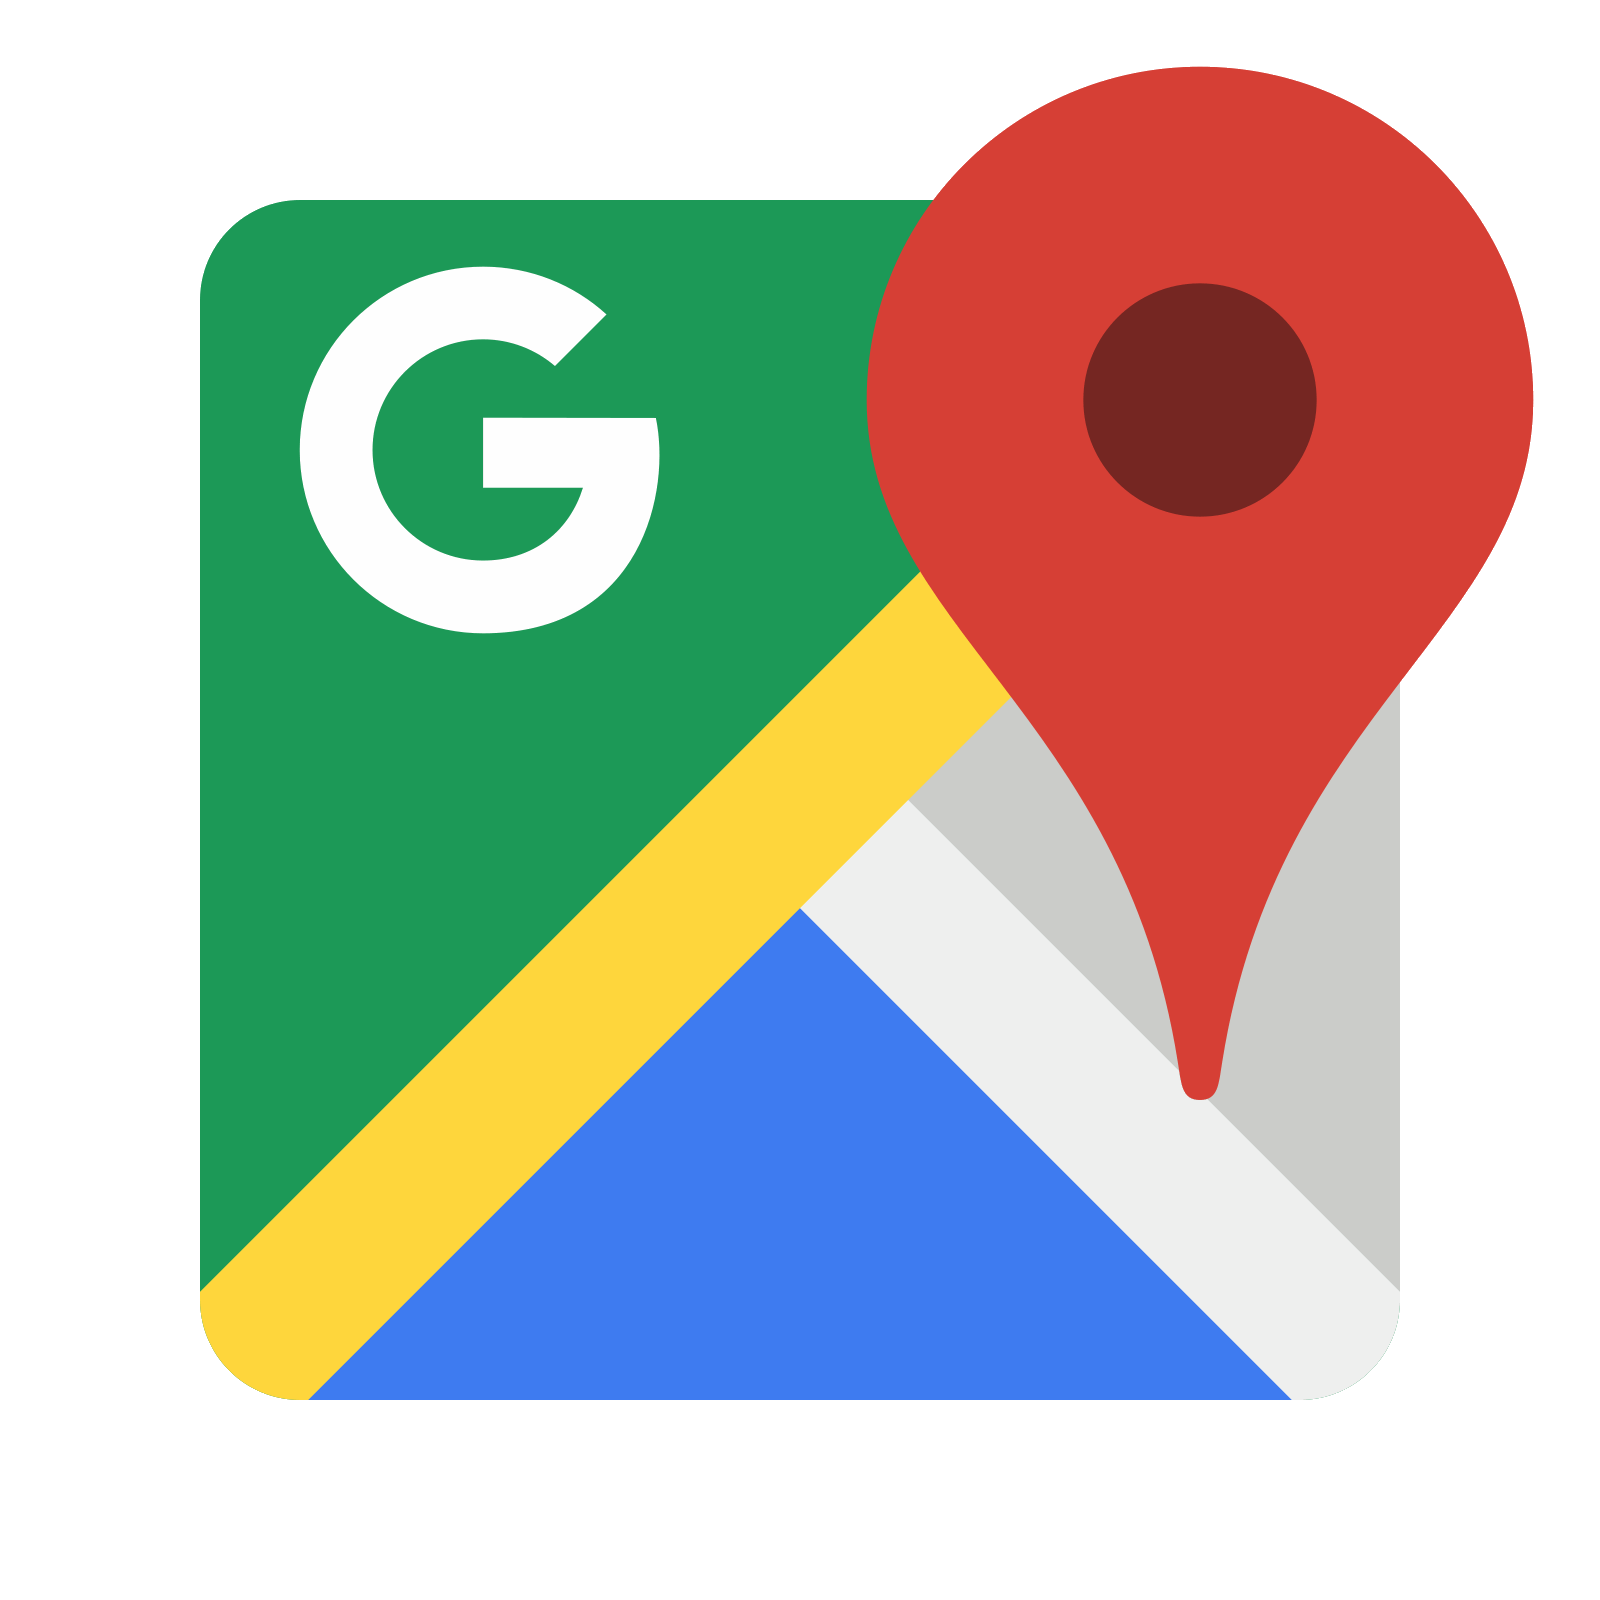 Google icon png. Clipart location map vector